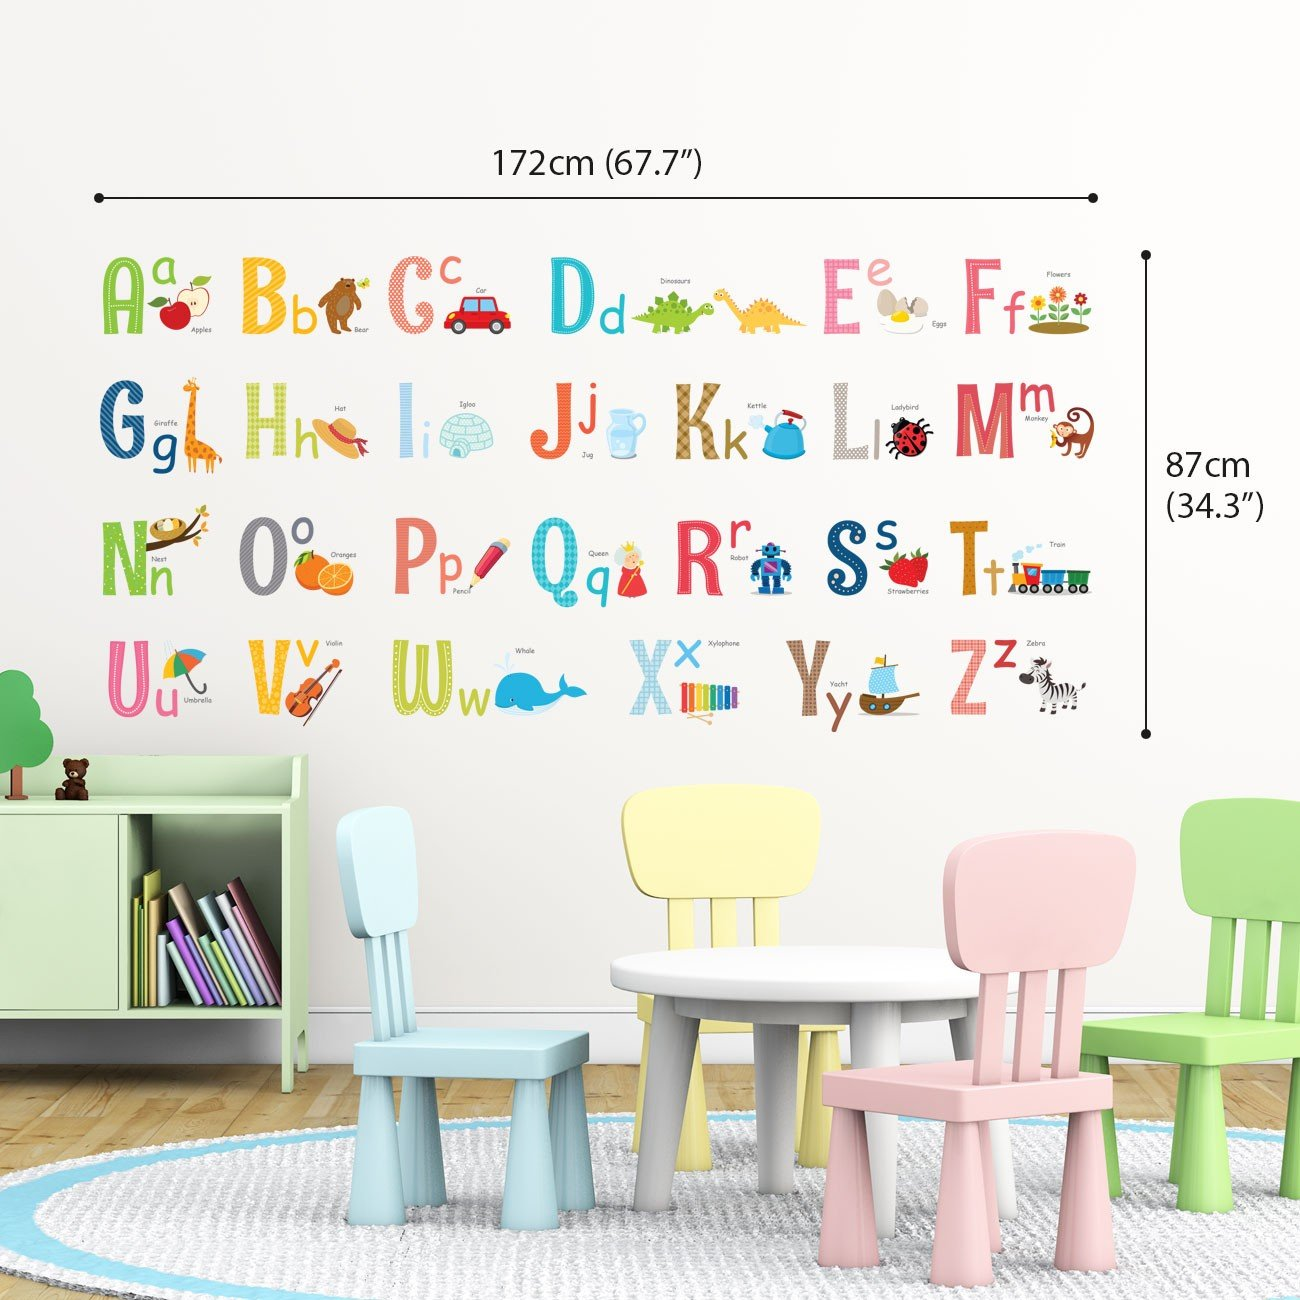 Decowall DS-8023 Alphabet ABC with Pictures Kids Wall Stickers Wall Decals Peel and Stick Removable Wall Stickers for Kids Nursery Bedroom Living Room Small